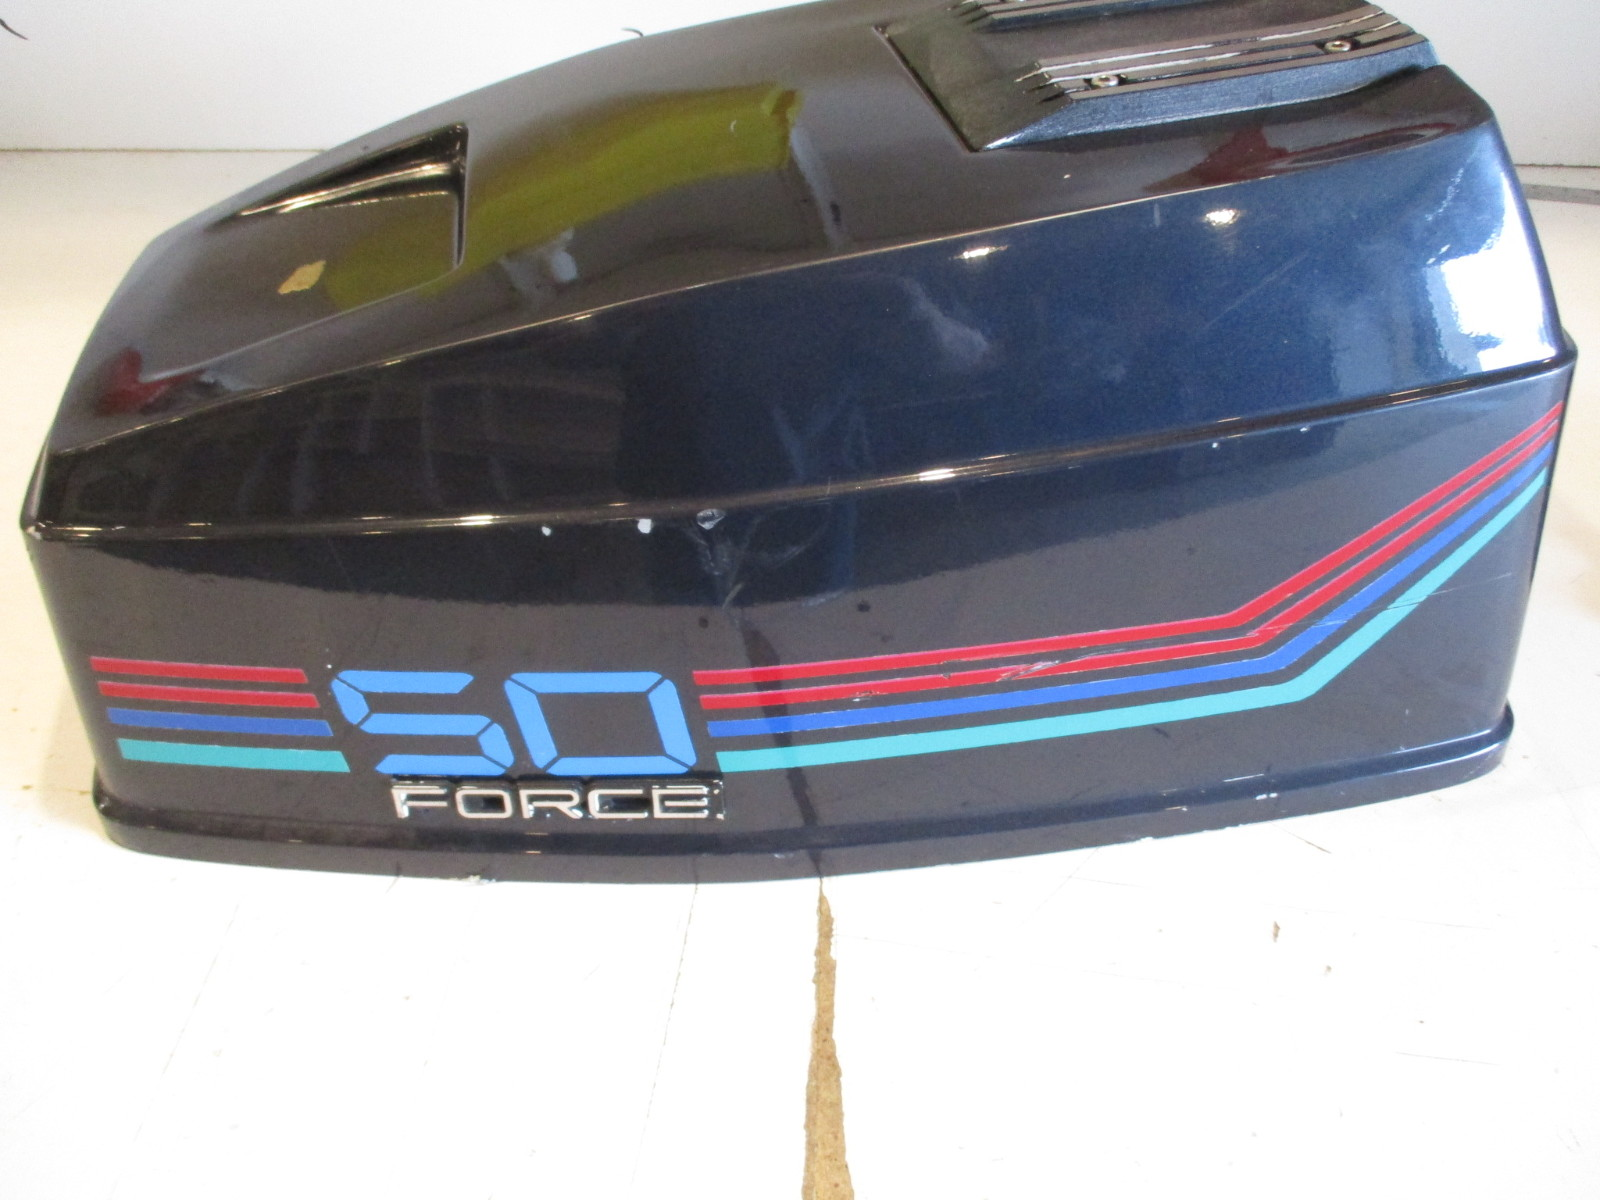 Force 50 Hp Outboard Motor review mercury 3 5 Hp outboard manual